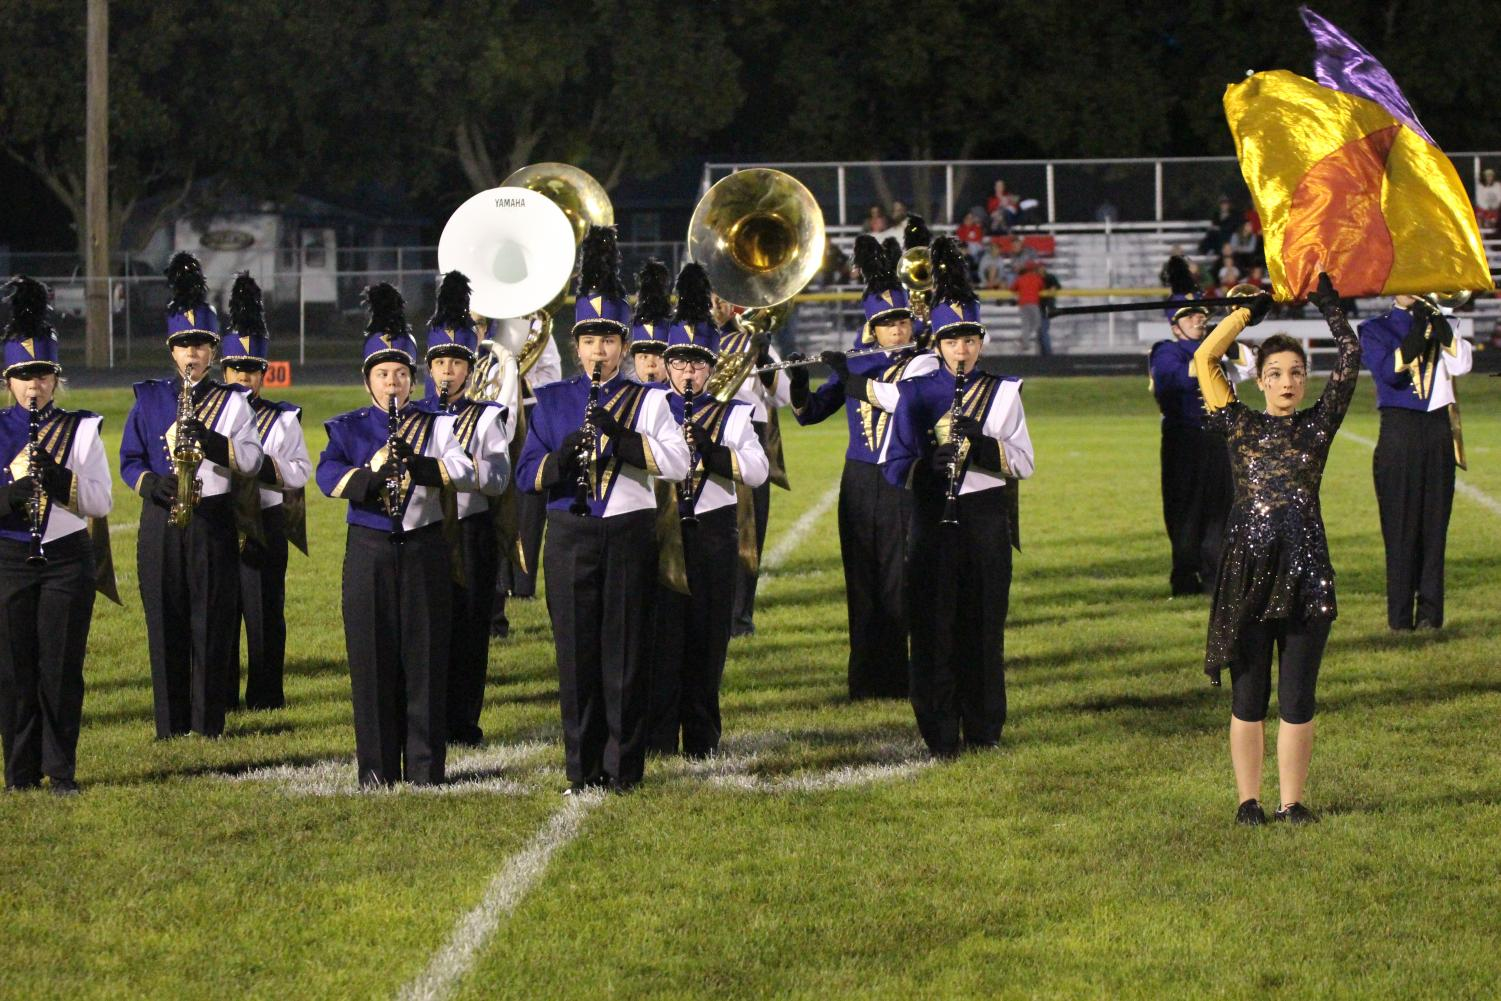 Members of the HHS Marching Band perform during the halftime of a recent football game.